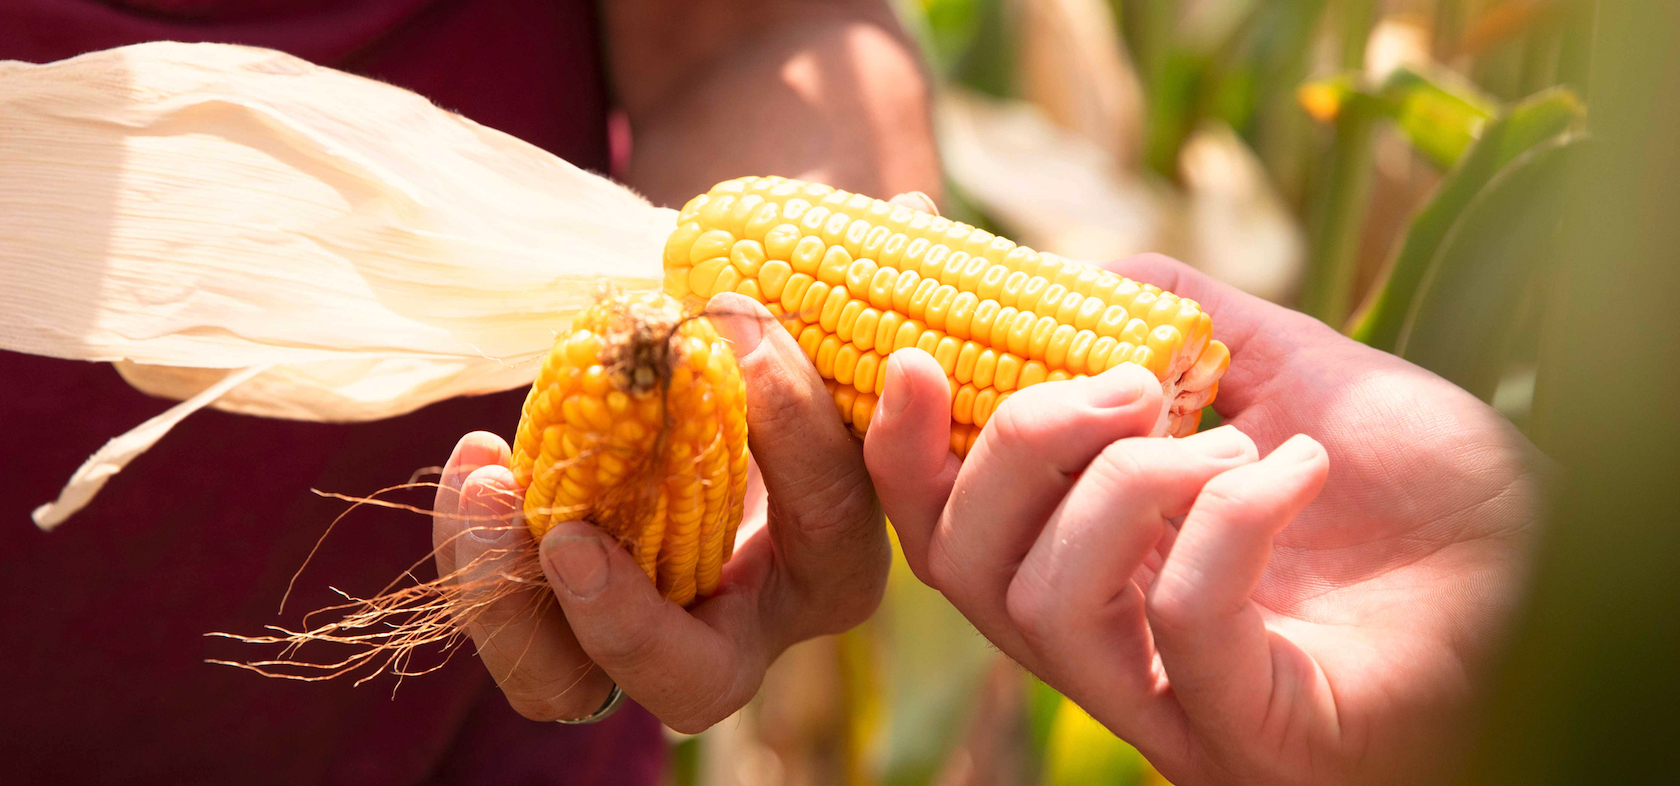 Hands and corn